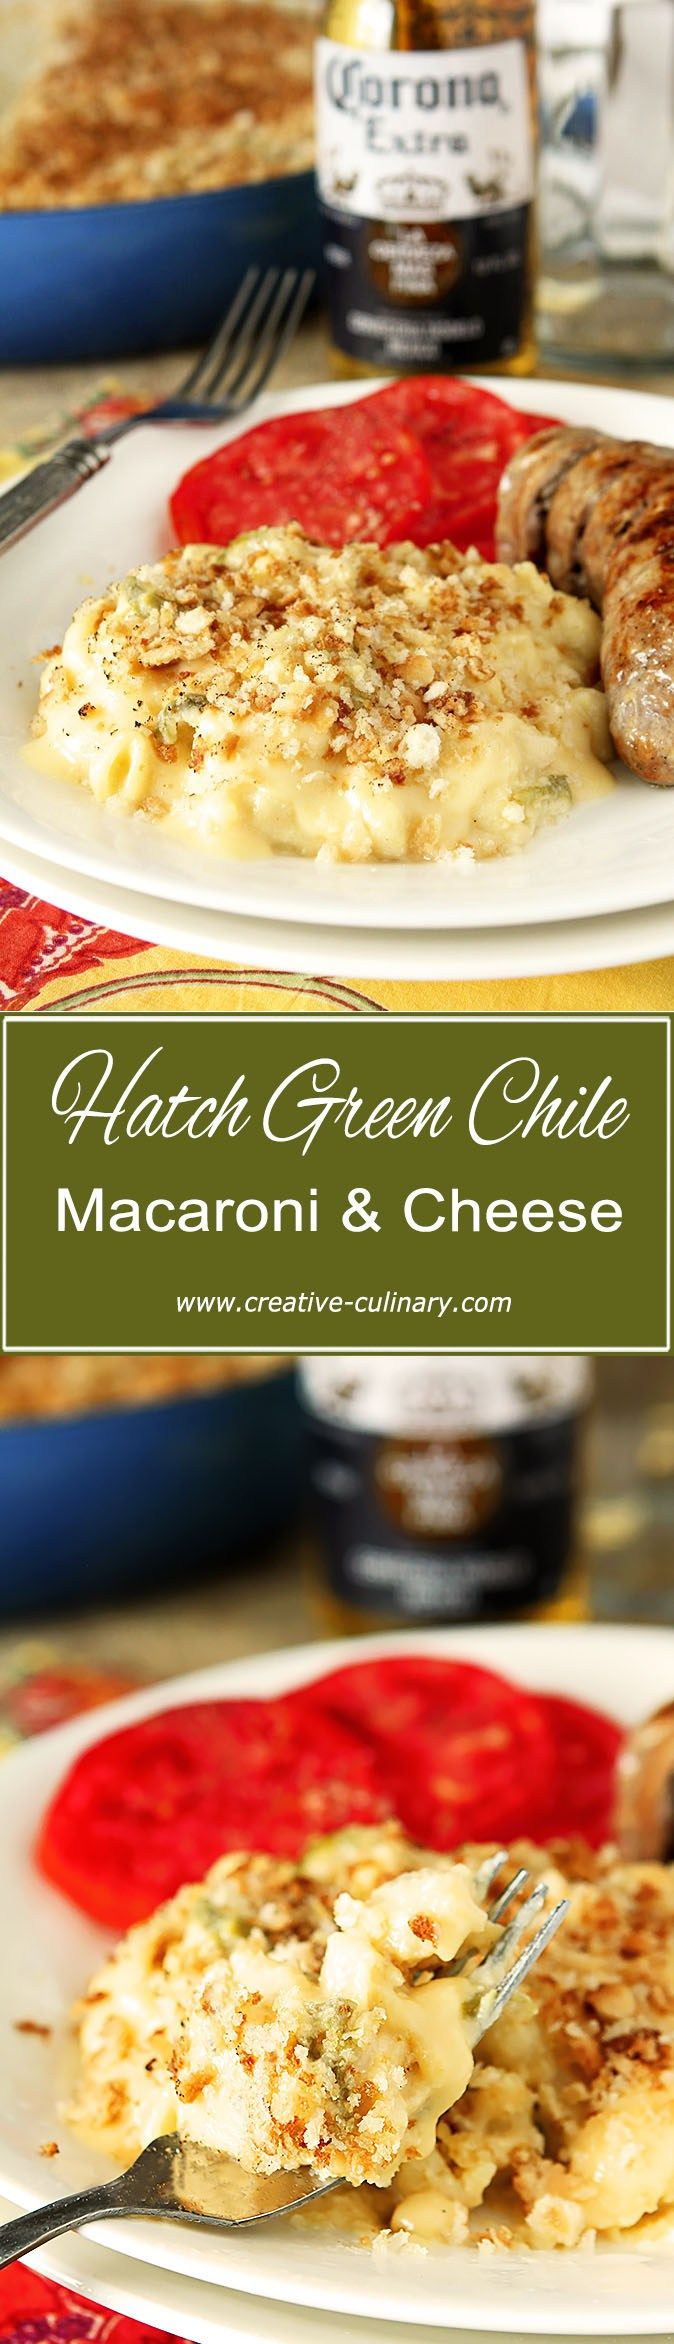 This Hatch Green Chile Macaroni and Cheese is smooth, creamy and flavorful with the subtle bite of Hatch Green Chiles.